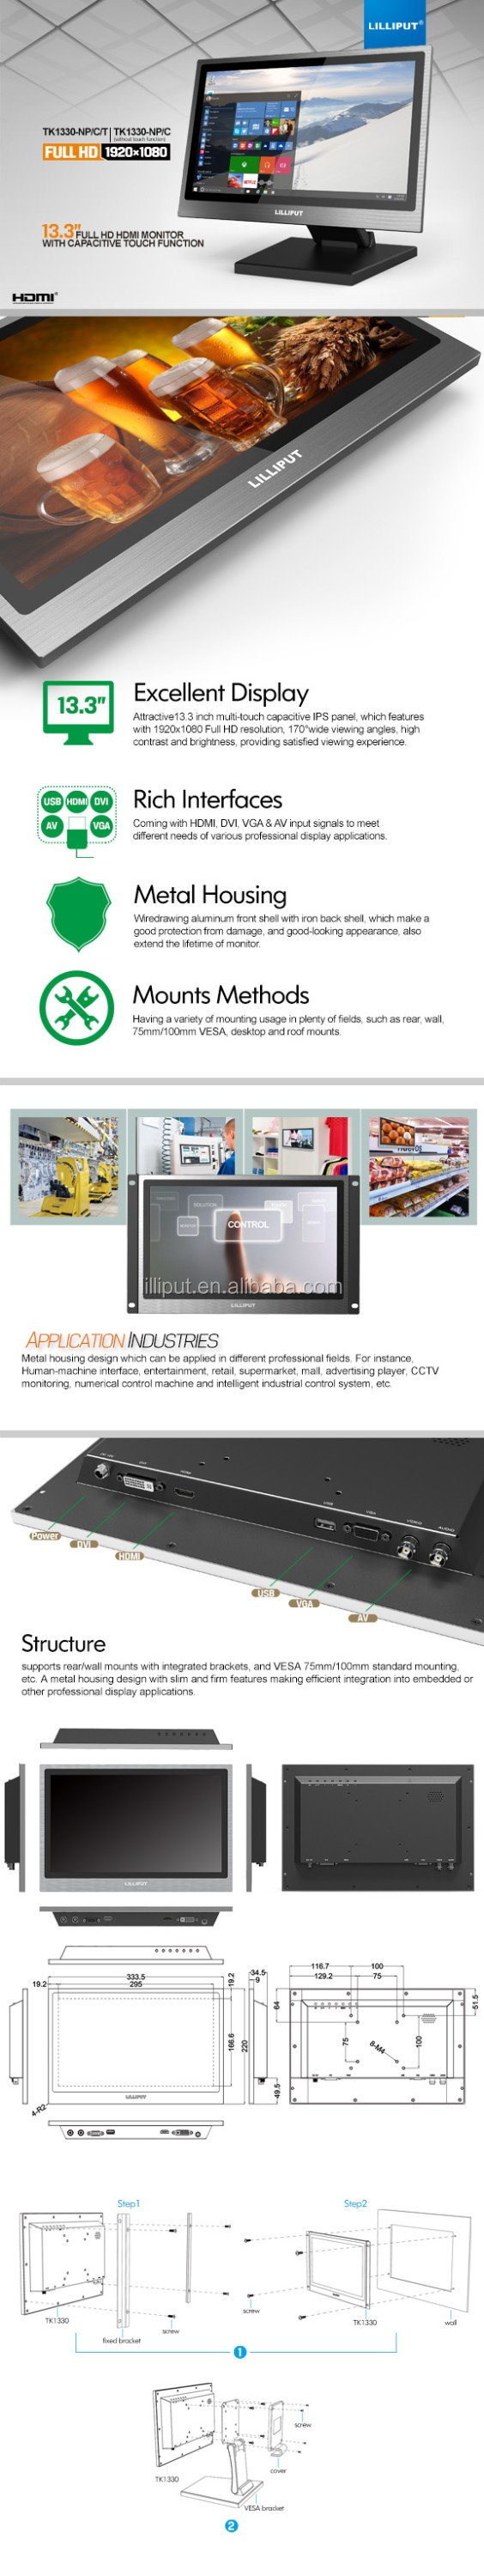 "LILLIPUT TK1330 13.3"" Industrial Touch Screen Monitor design for ATM, Kiosk, industrial, medical, retail"